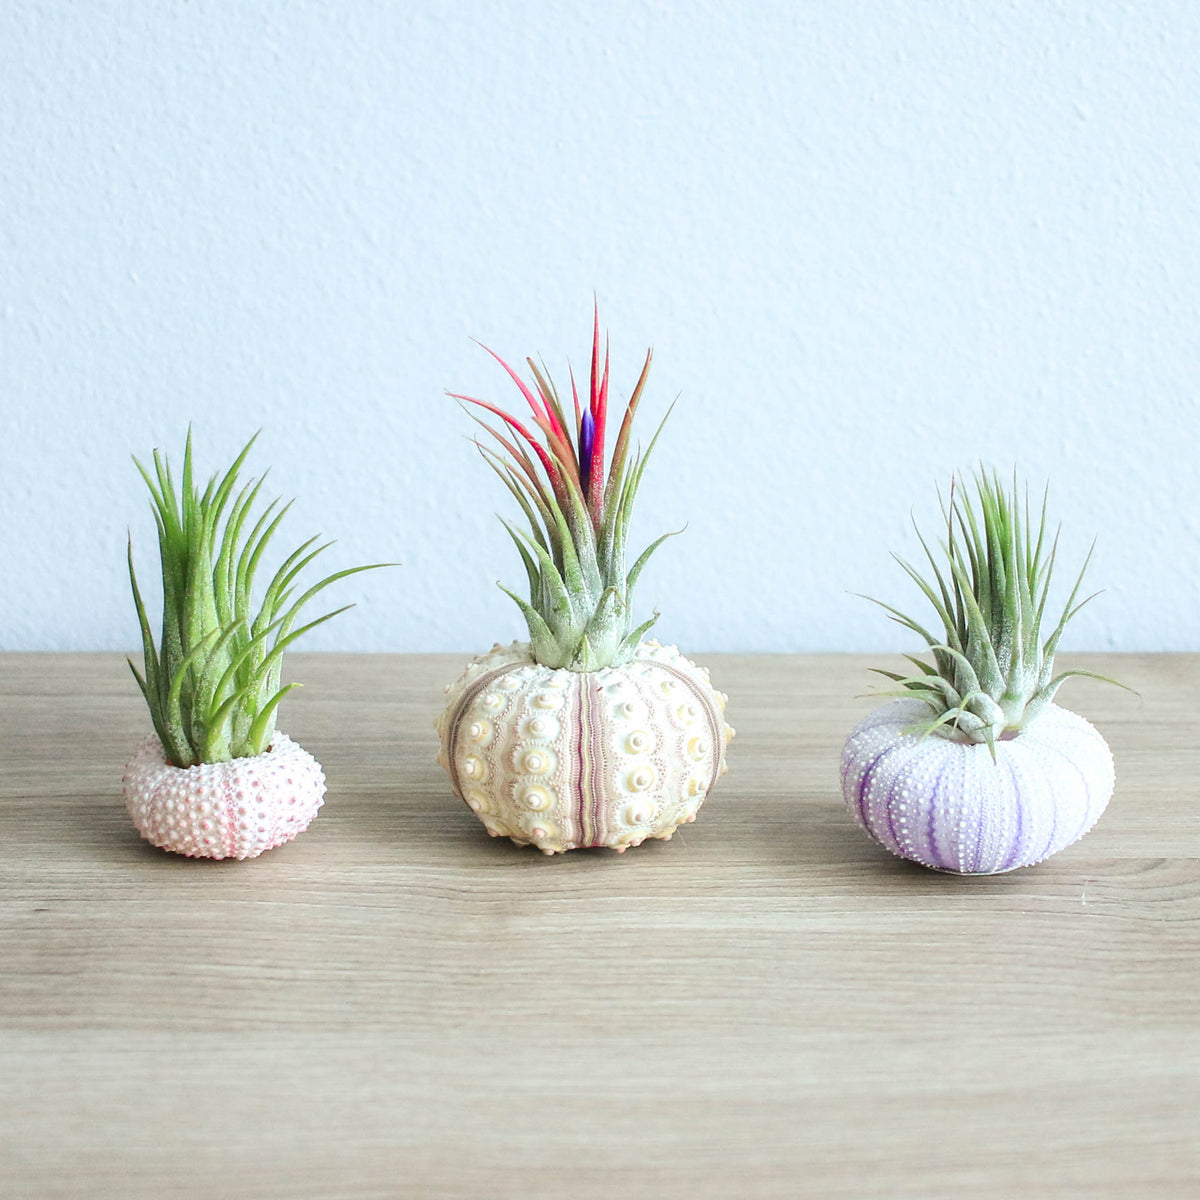 Wholesale - Urchin Collection Variety Pack with Ionantha Air Plants